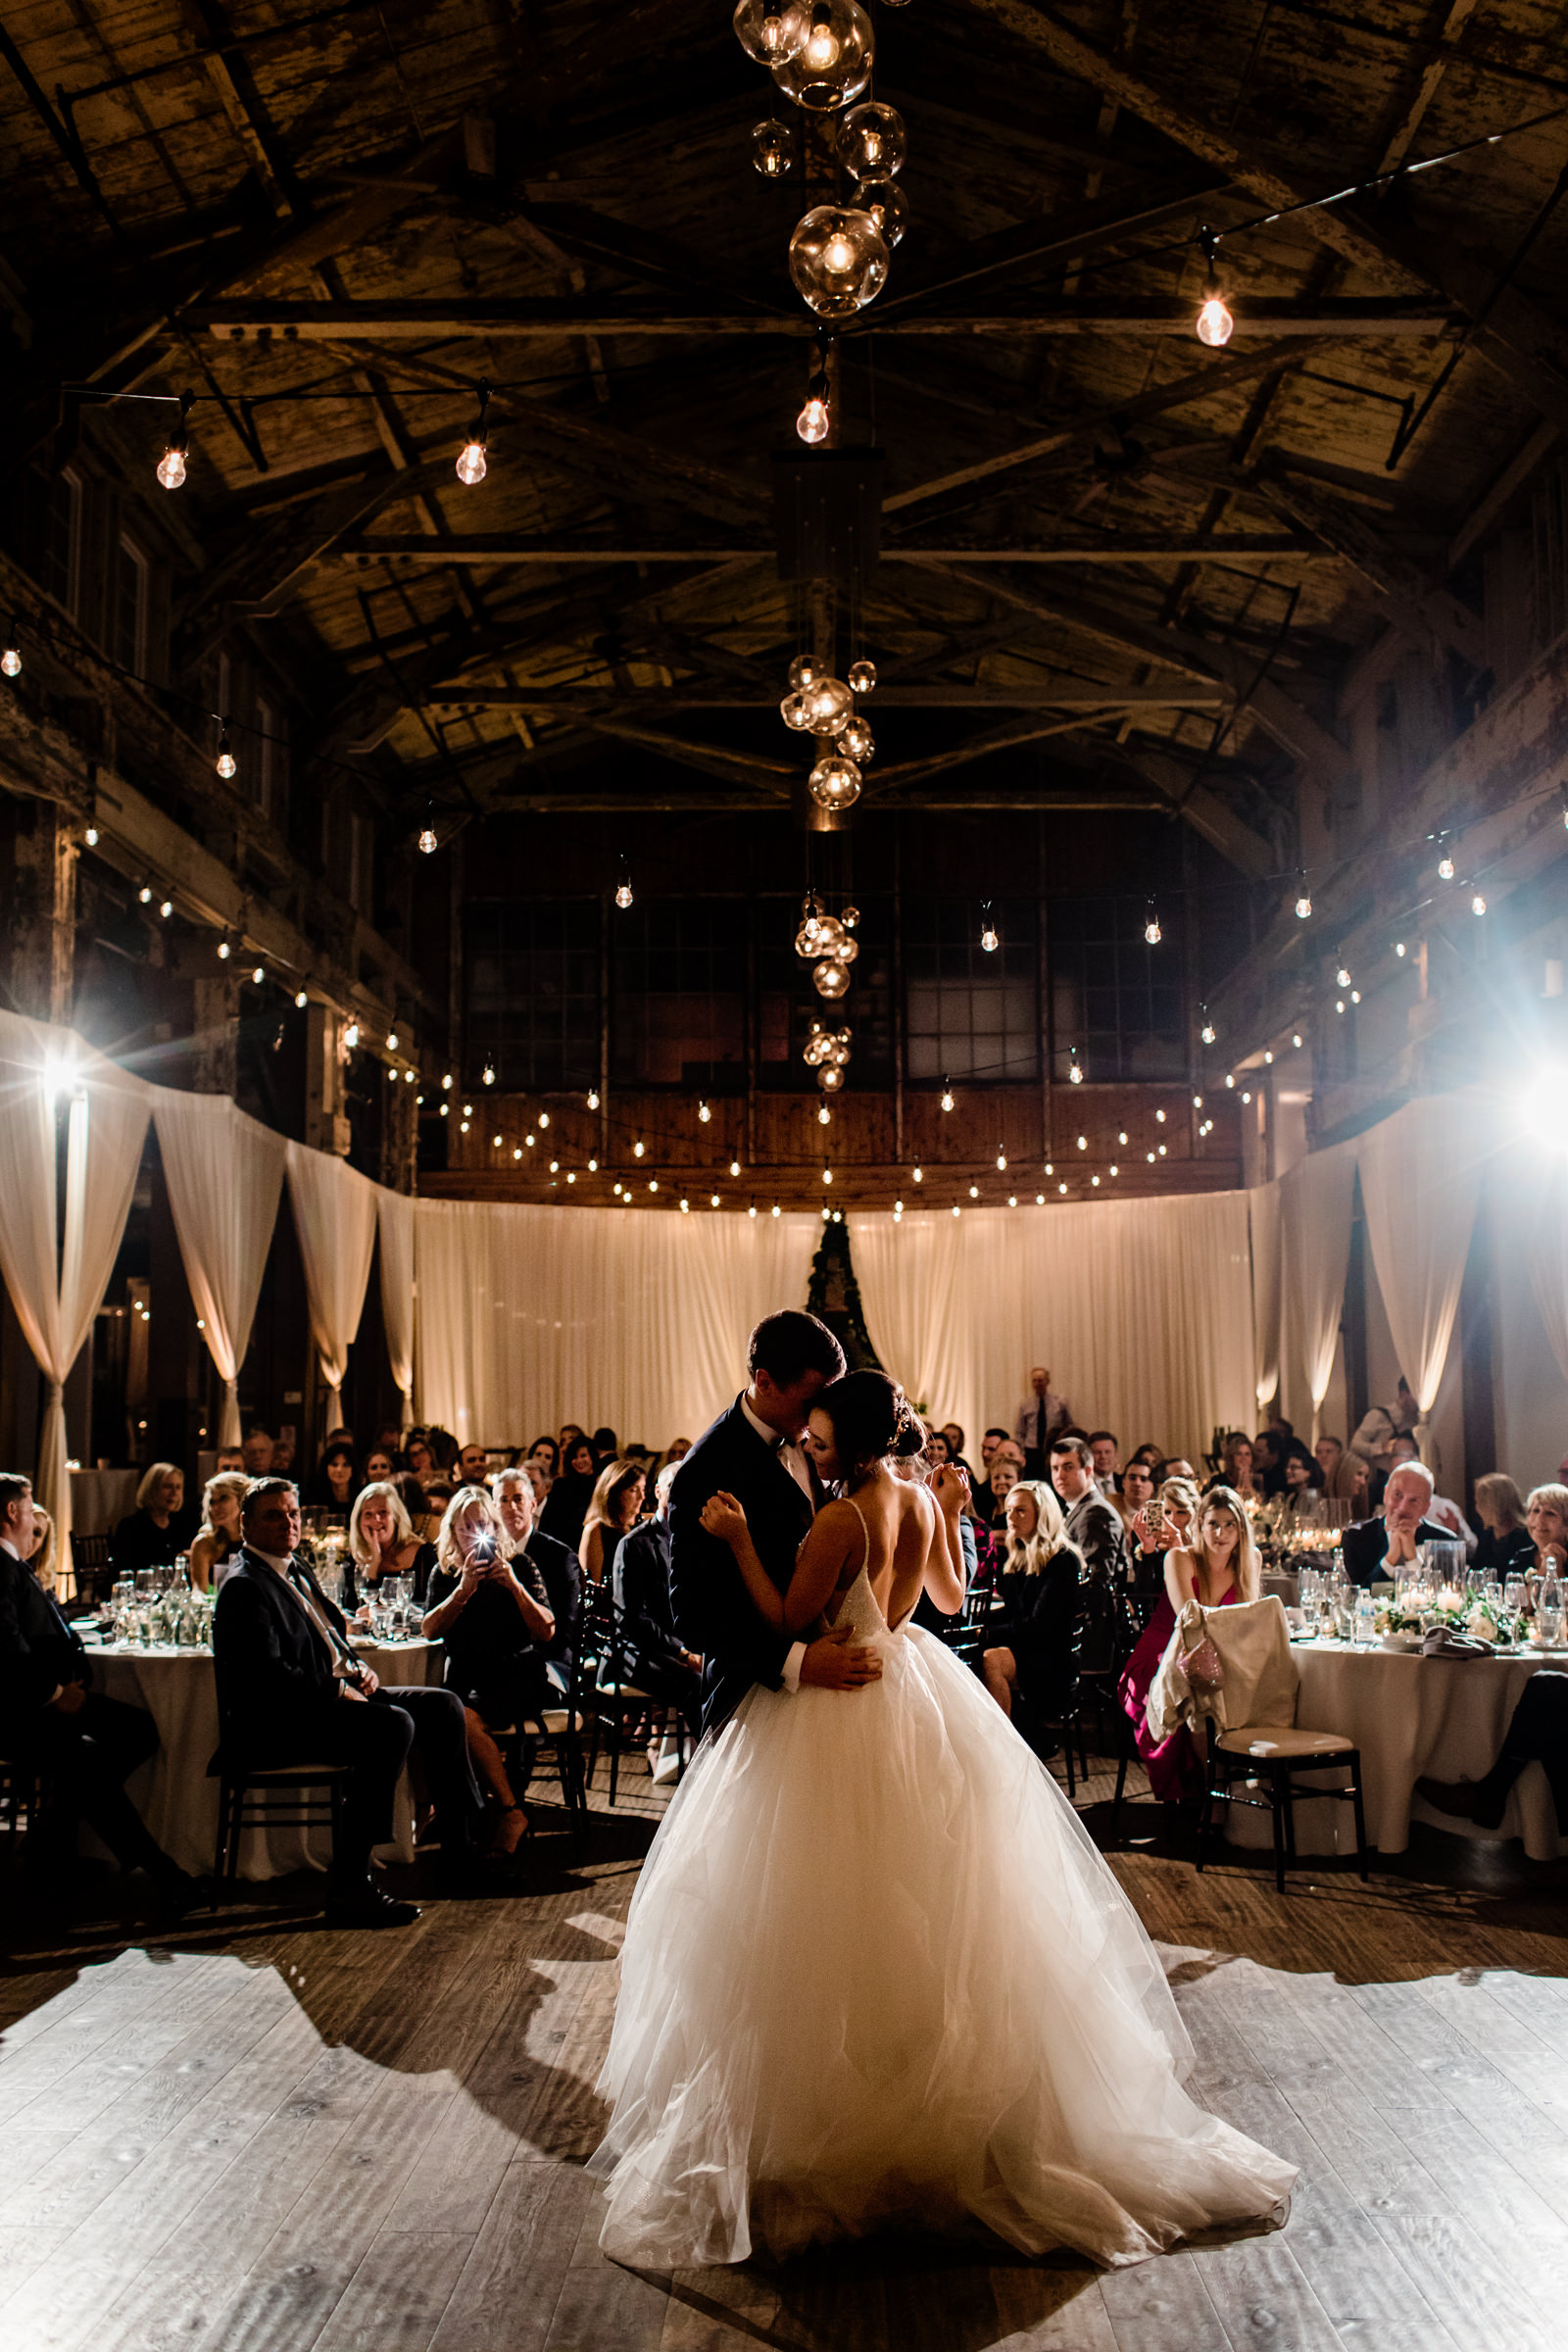 first-dance-at-evening-reception-under-strings-of-lights-against-white-drapery-into-dust-photography